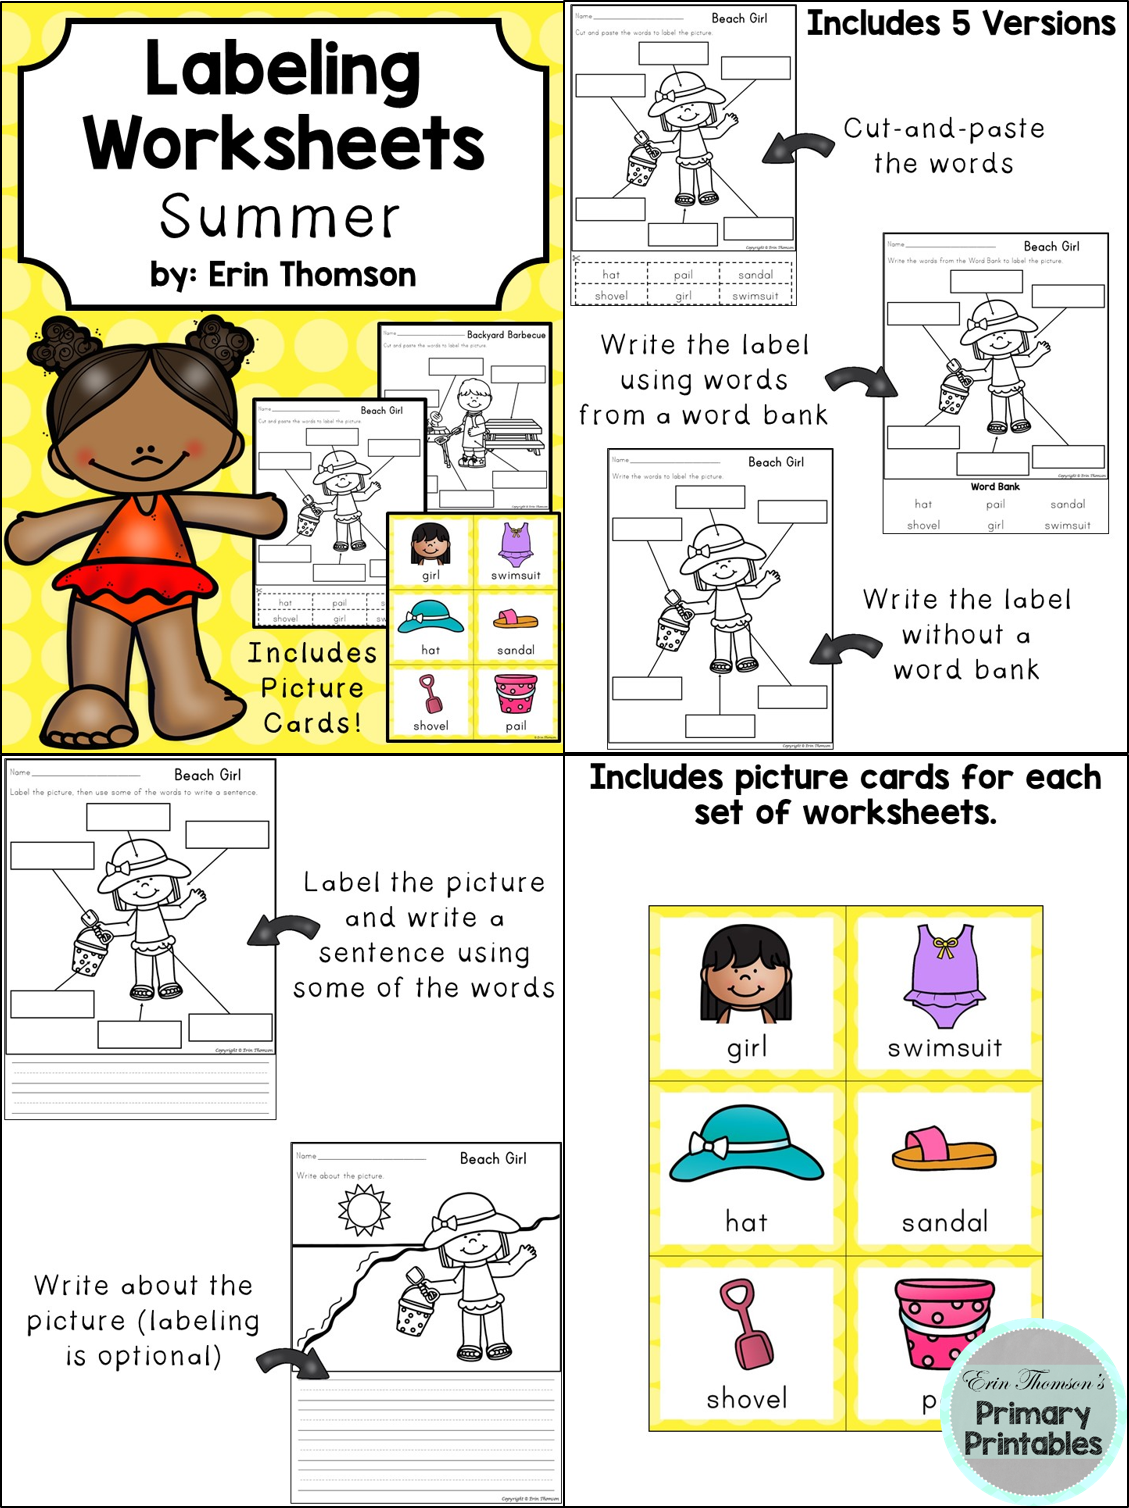 Labeling Worksheets And Writing Prompts Summer Themed